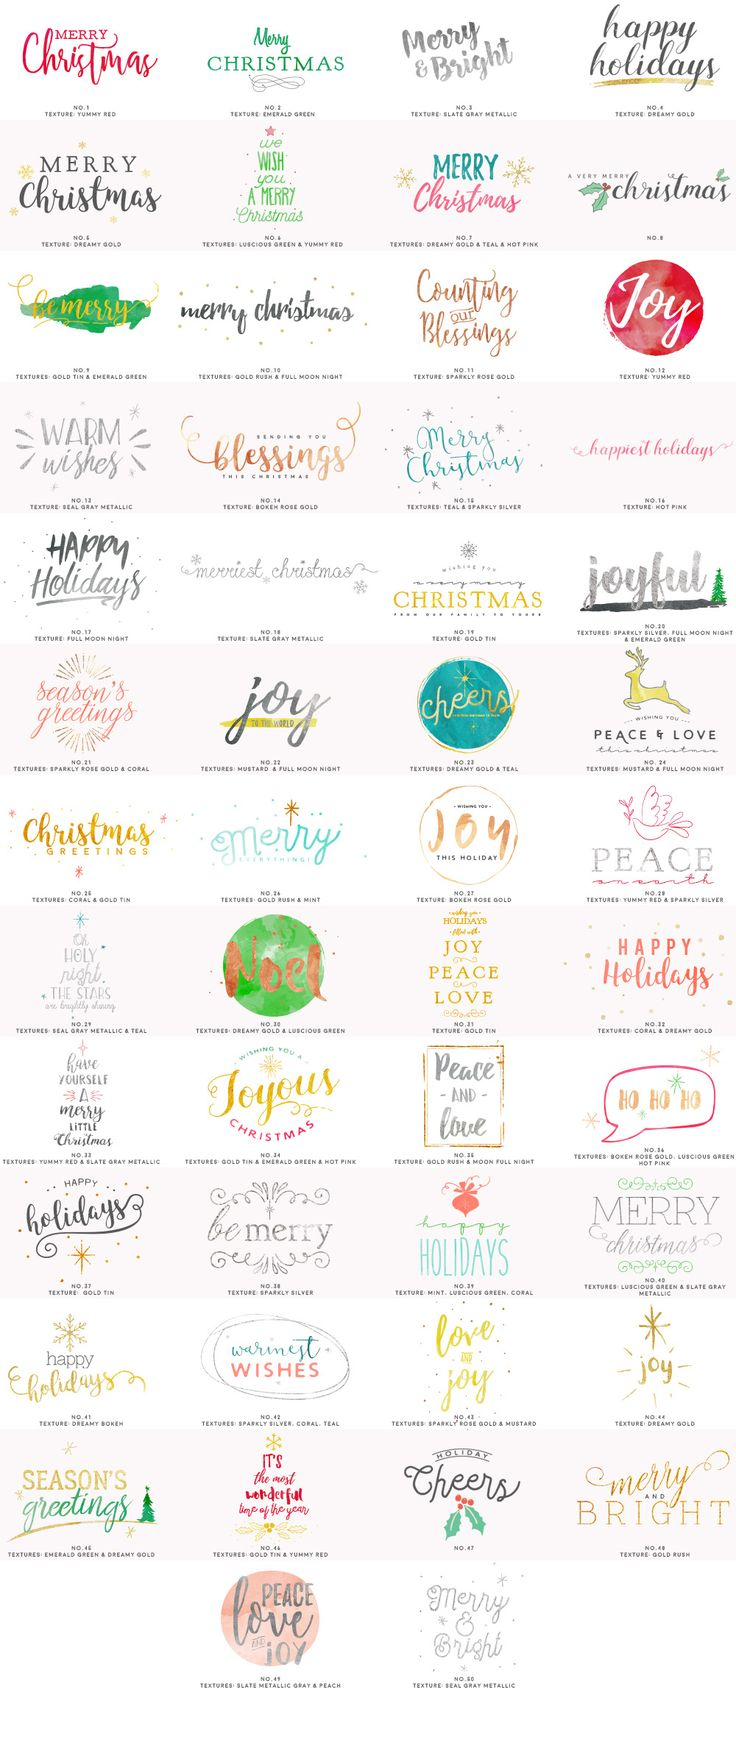 Design your own Christmas Cards by 7th Avenue Designs on @creativemarket